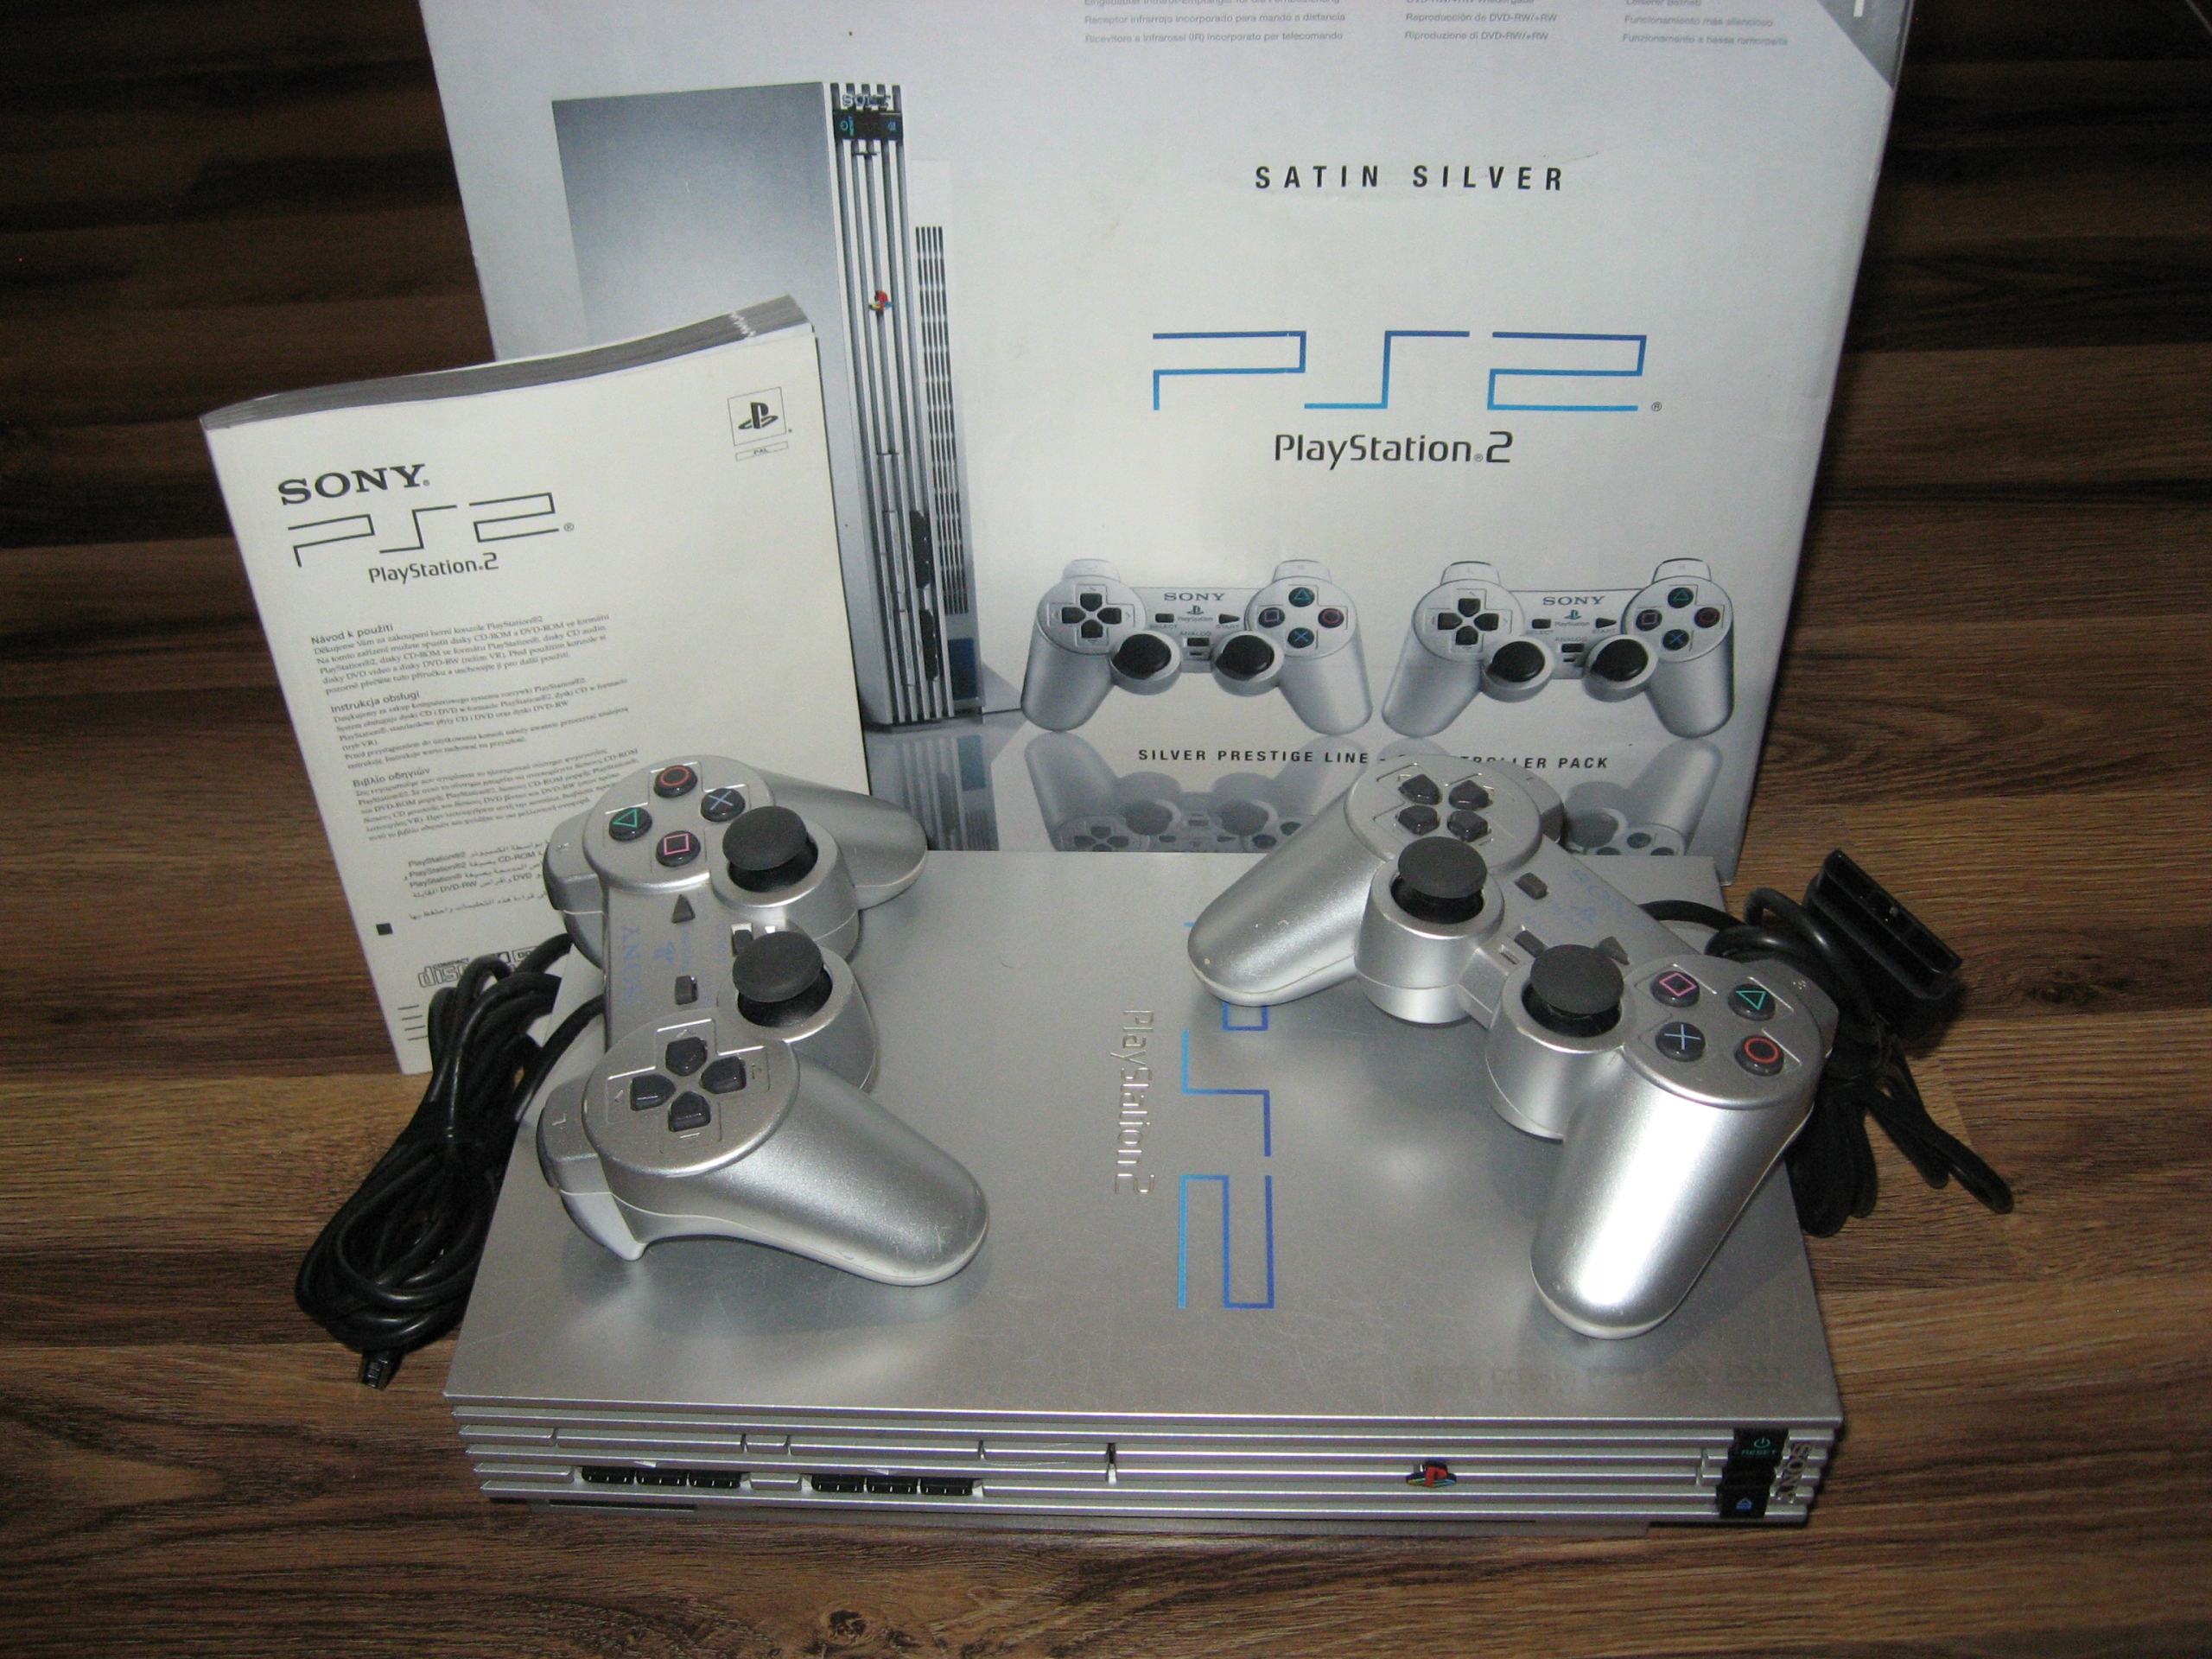 SONY PLAY STATION 2 SATIN SILVER PUDEŁKO 2 PADY!